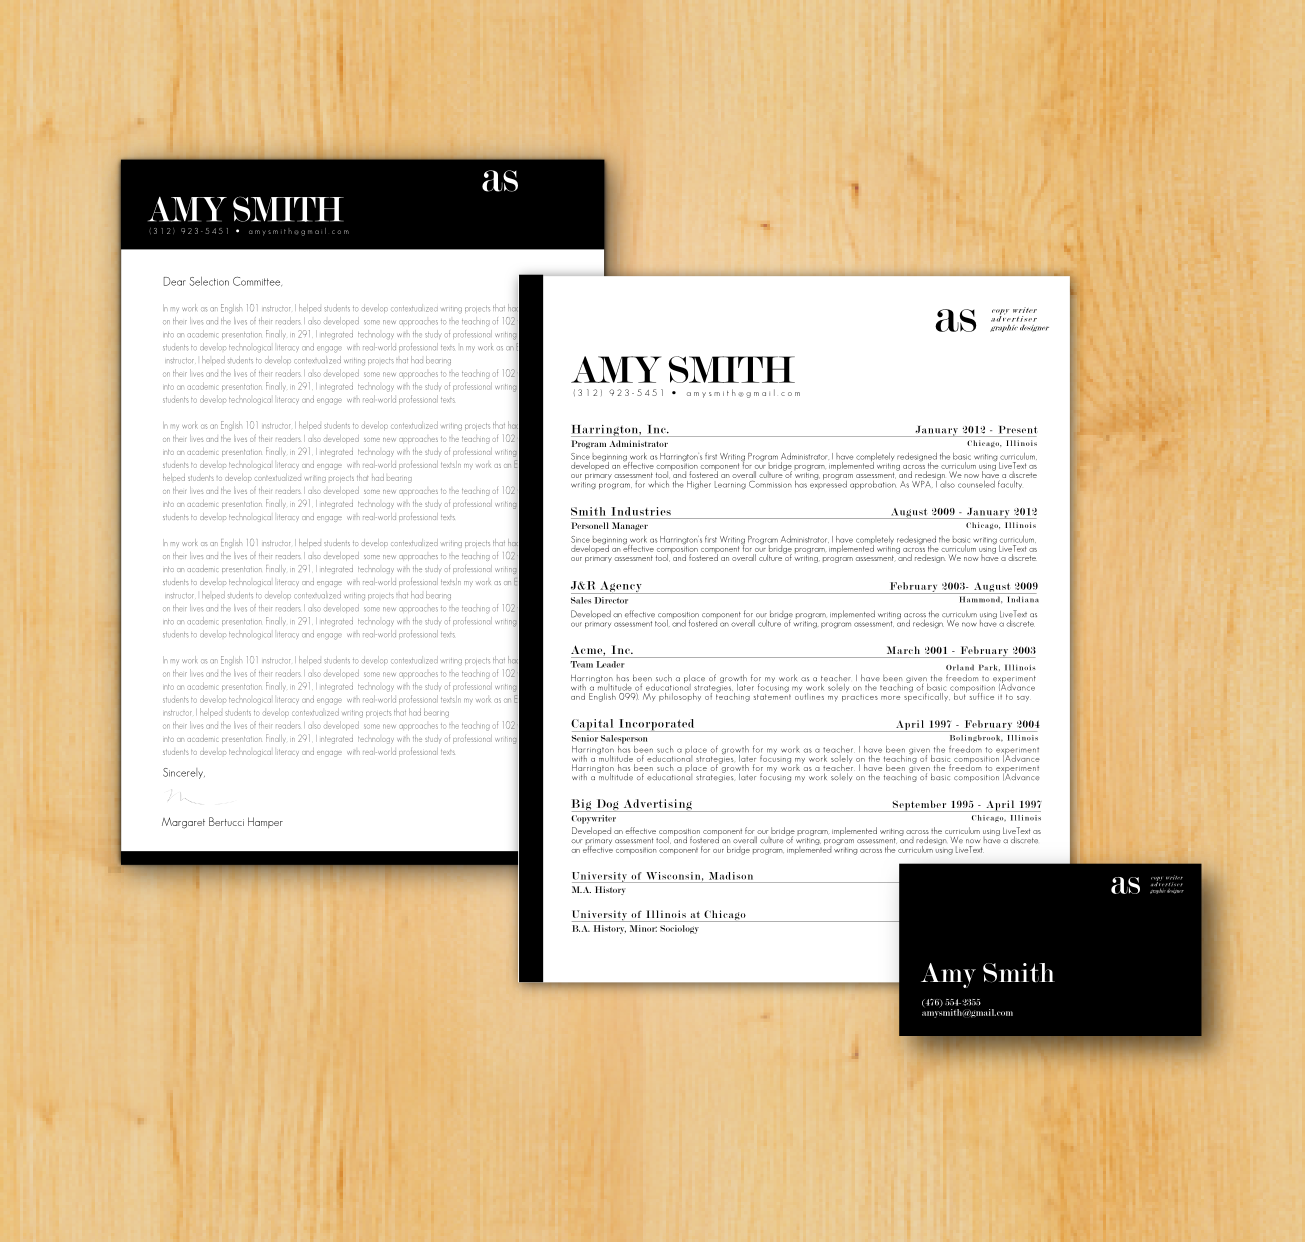 Writing A Cover Letter Design: Original Resume And Cover Letter